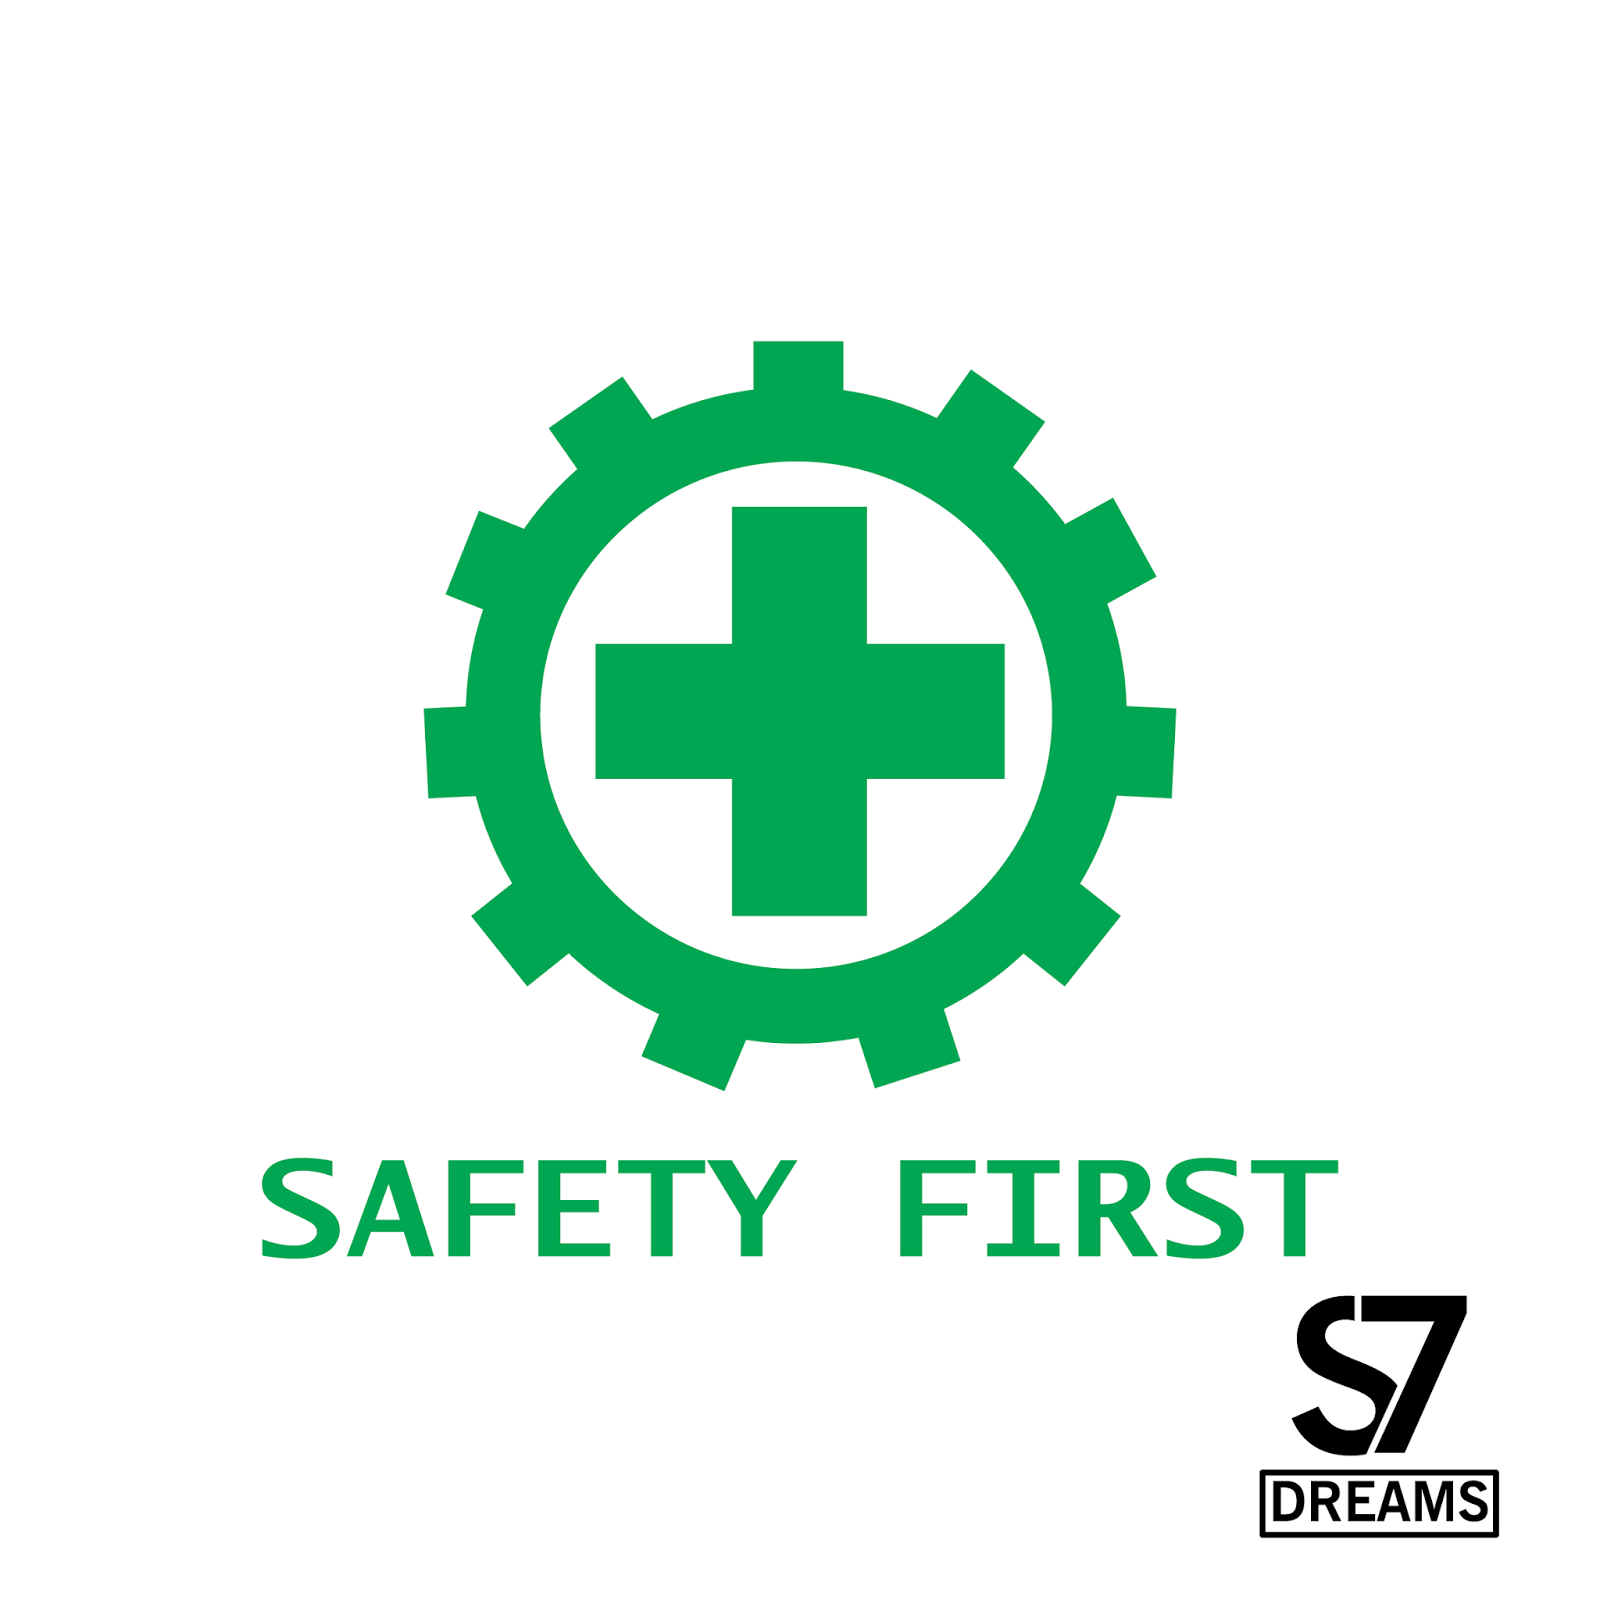 safety first logo vip pictures to pin on pinterest thepinsta